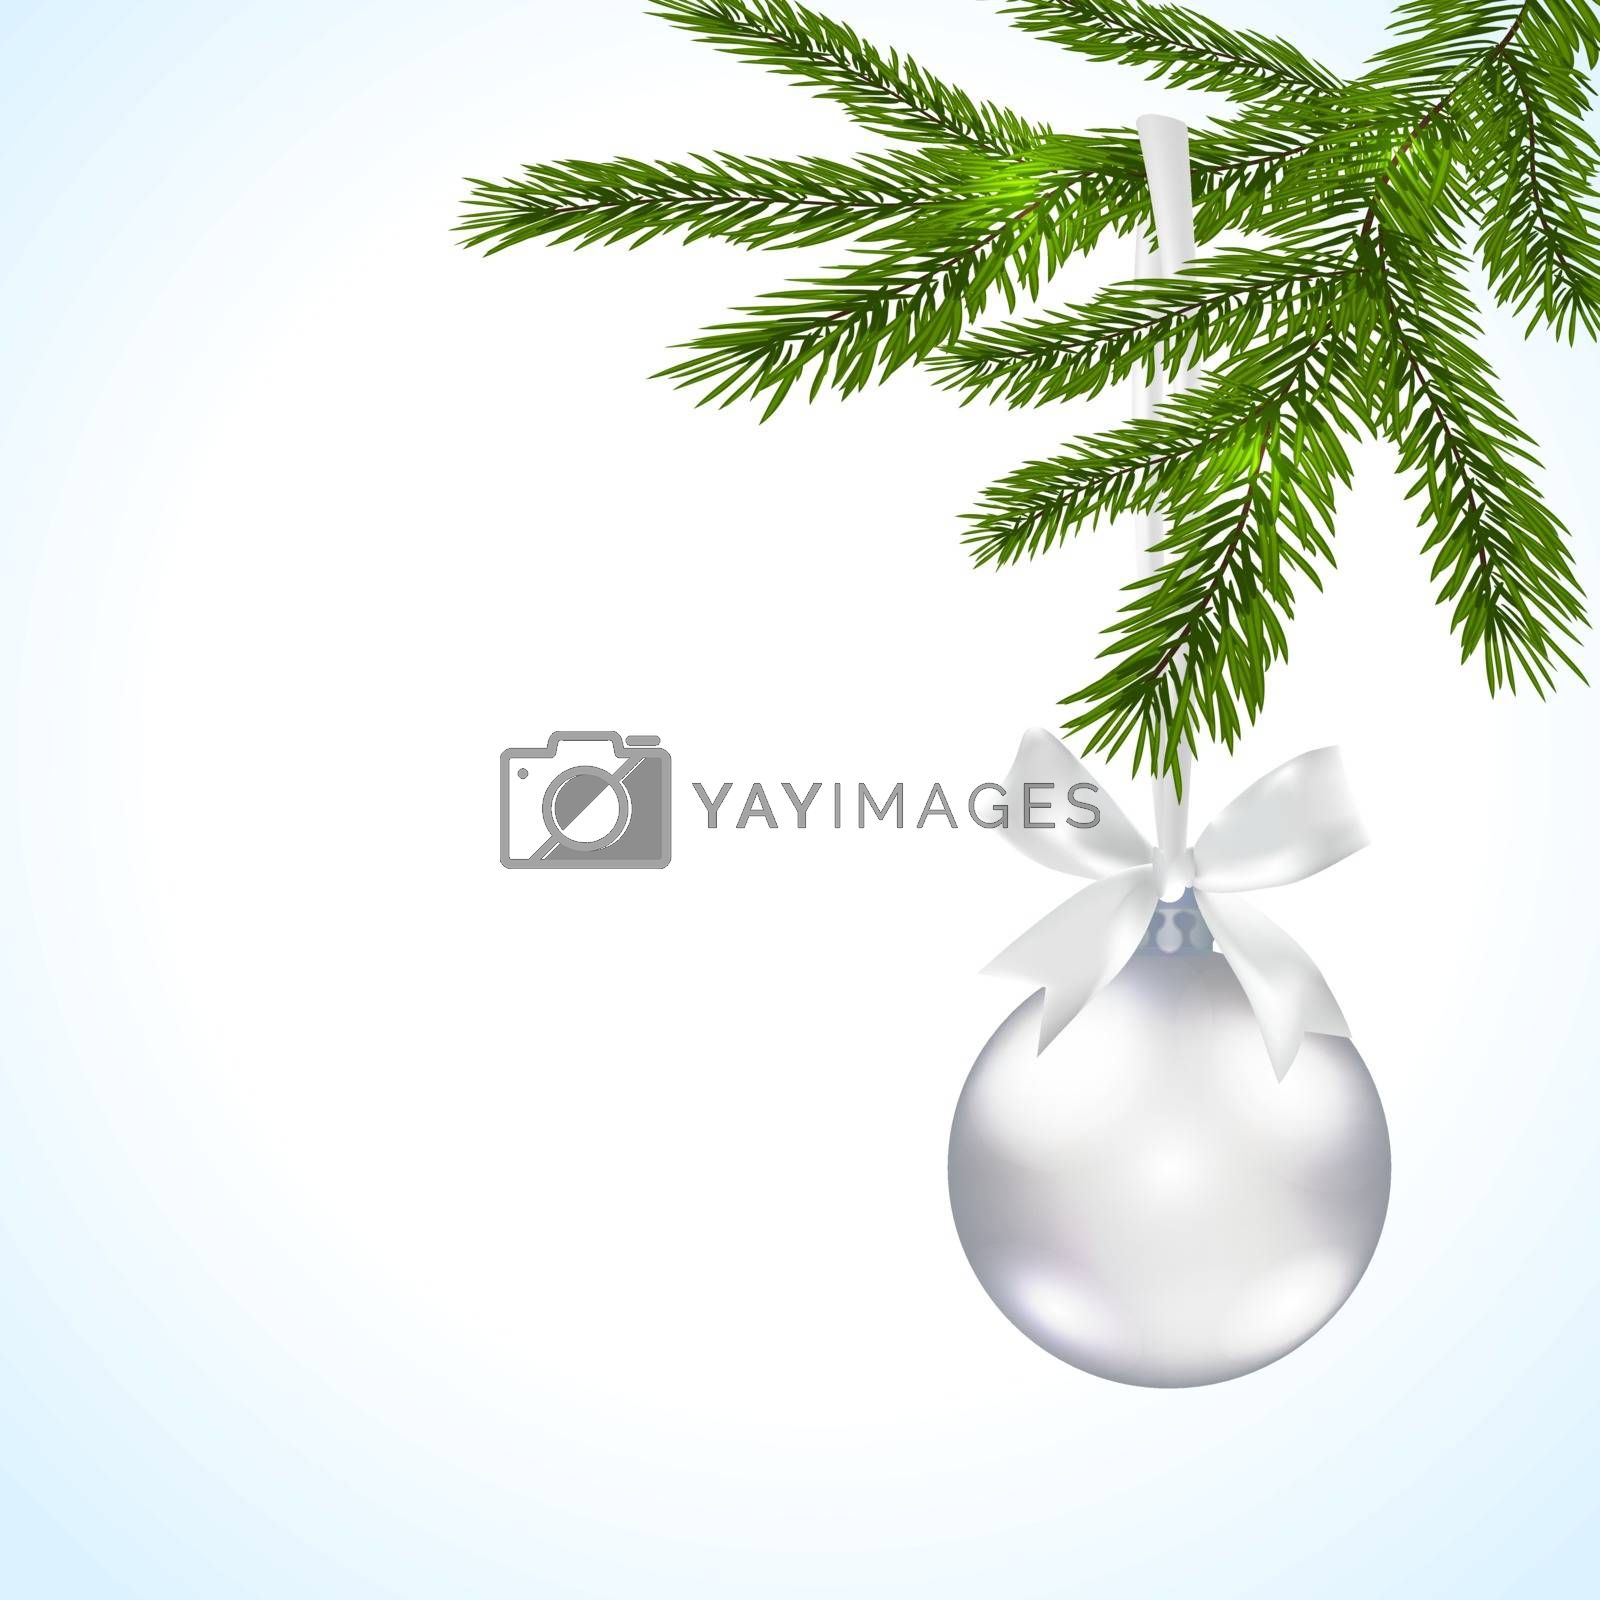 Green branches of a Christmas tree with silver balls and ribbon on a white background decorations. Vector illustration